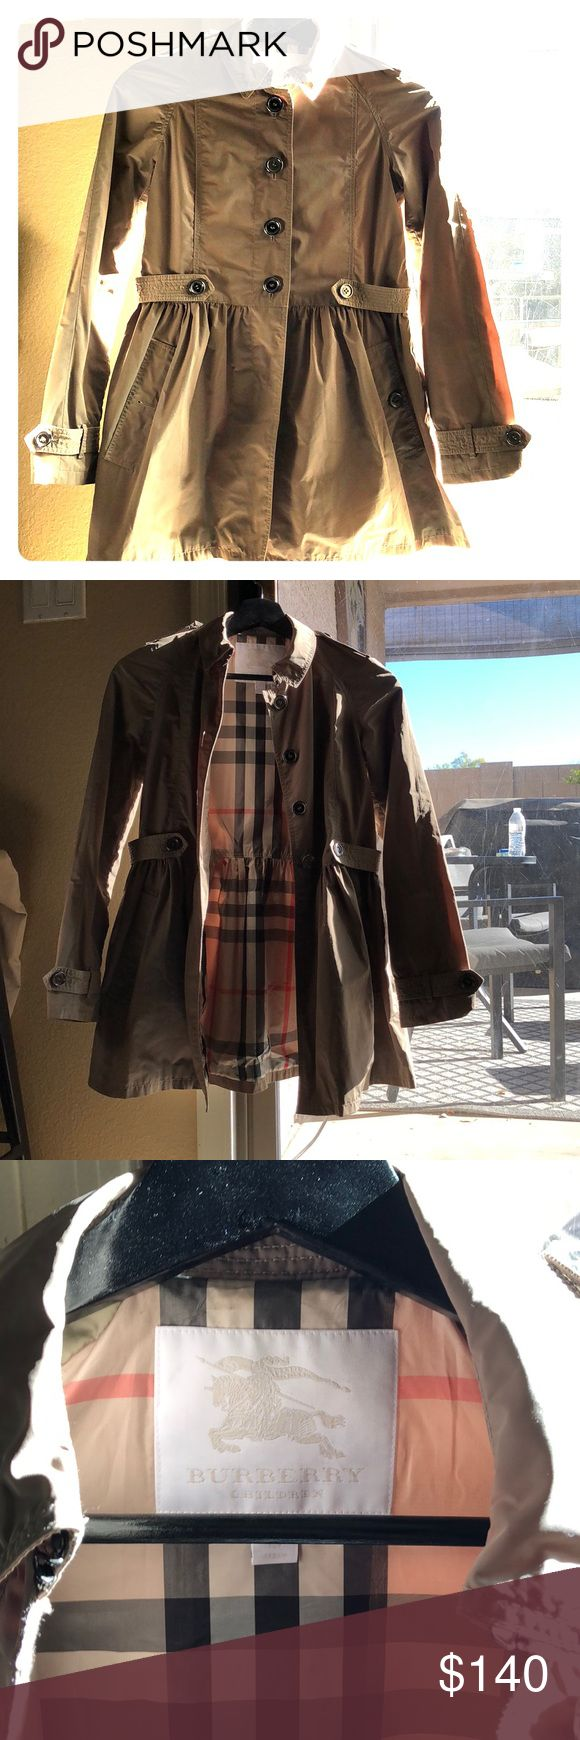 Burberry Youth Girls trench coat Size: 12Y (152 cm) In good condition, normal wear. All buttons in tact Burberry Jackets & Coats